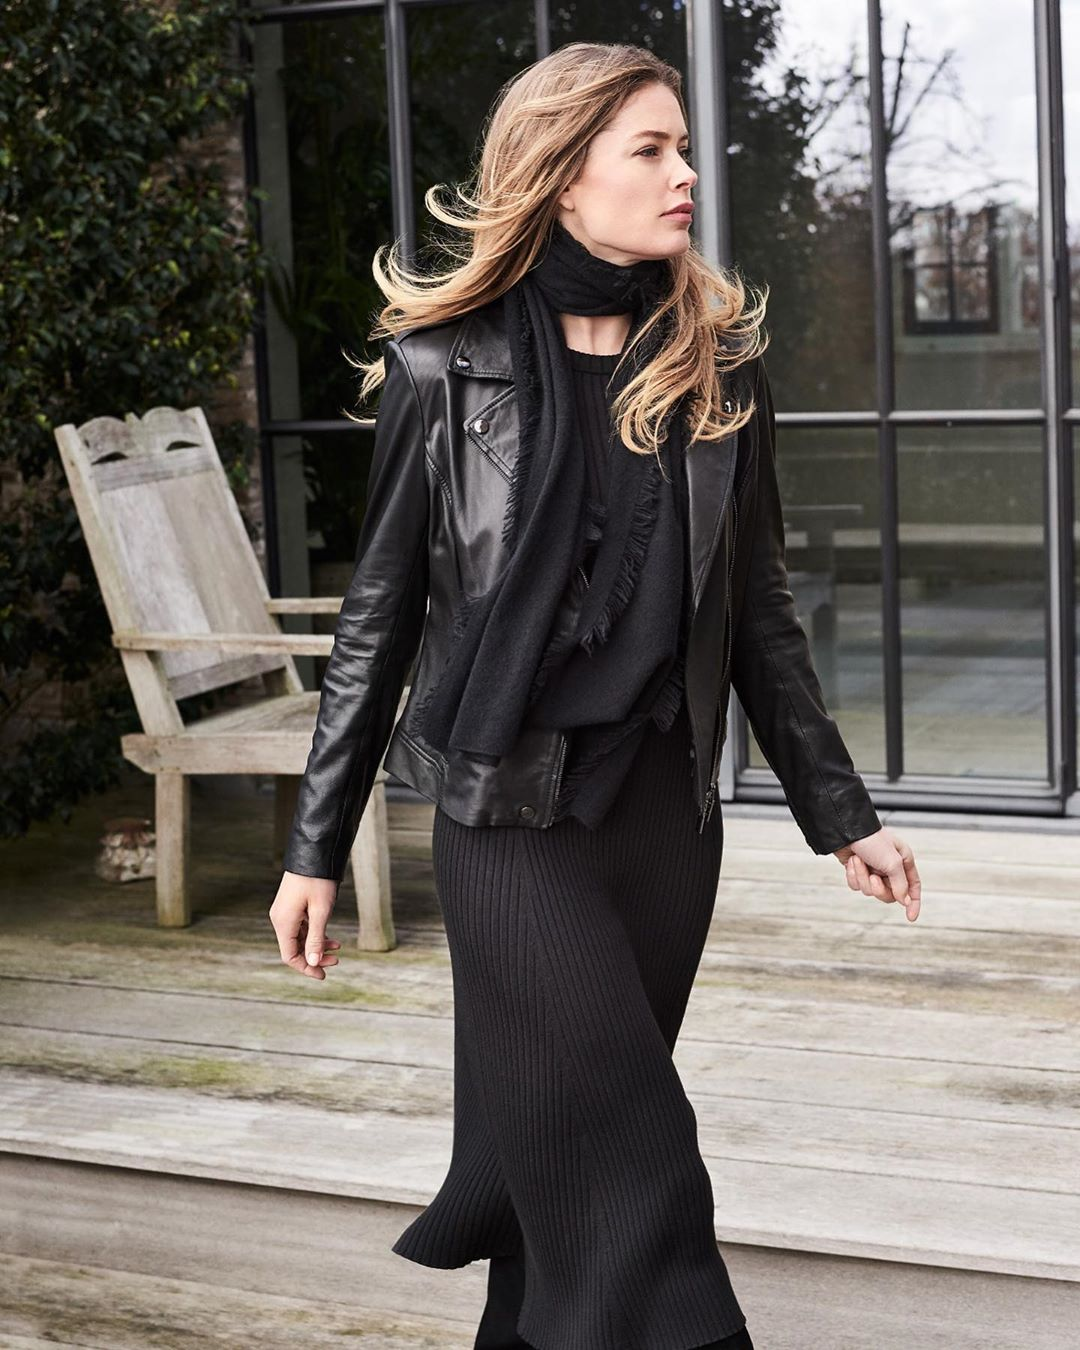 How to Wear a Leather Moto Jacket Like Model Doutzen Kroes